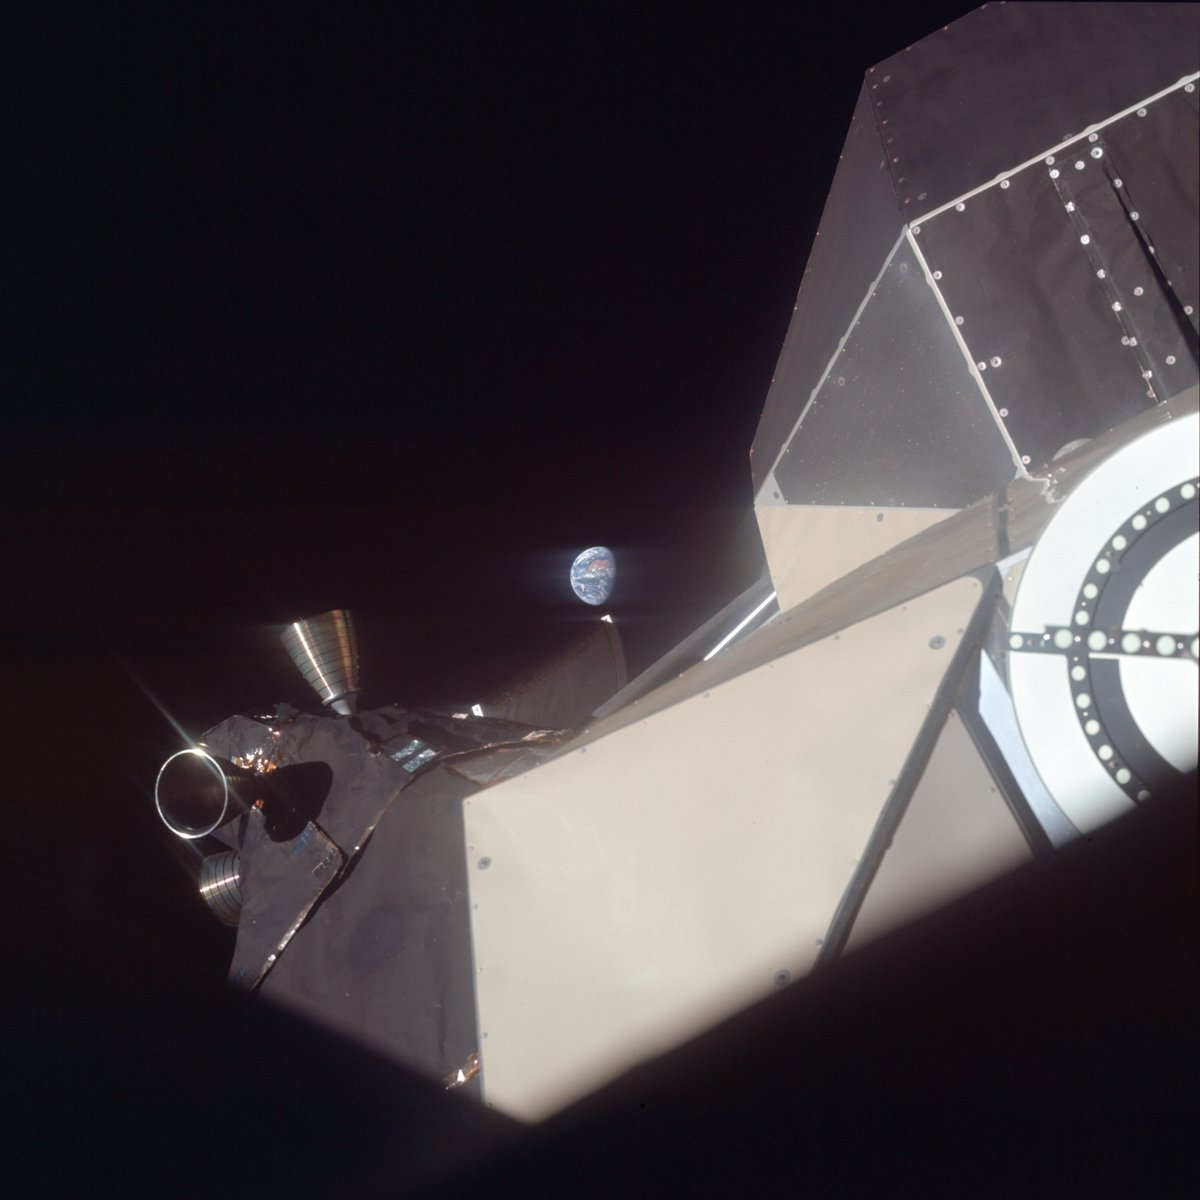 It's #Apollo50 week, time to post some images. This is an image of Earth and the lunar module during the trans-lunar journey. #Apollo11